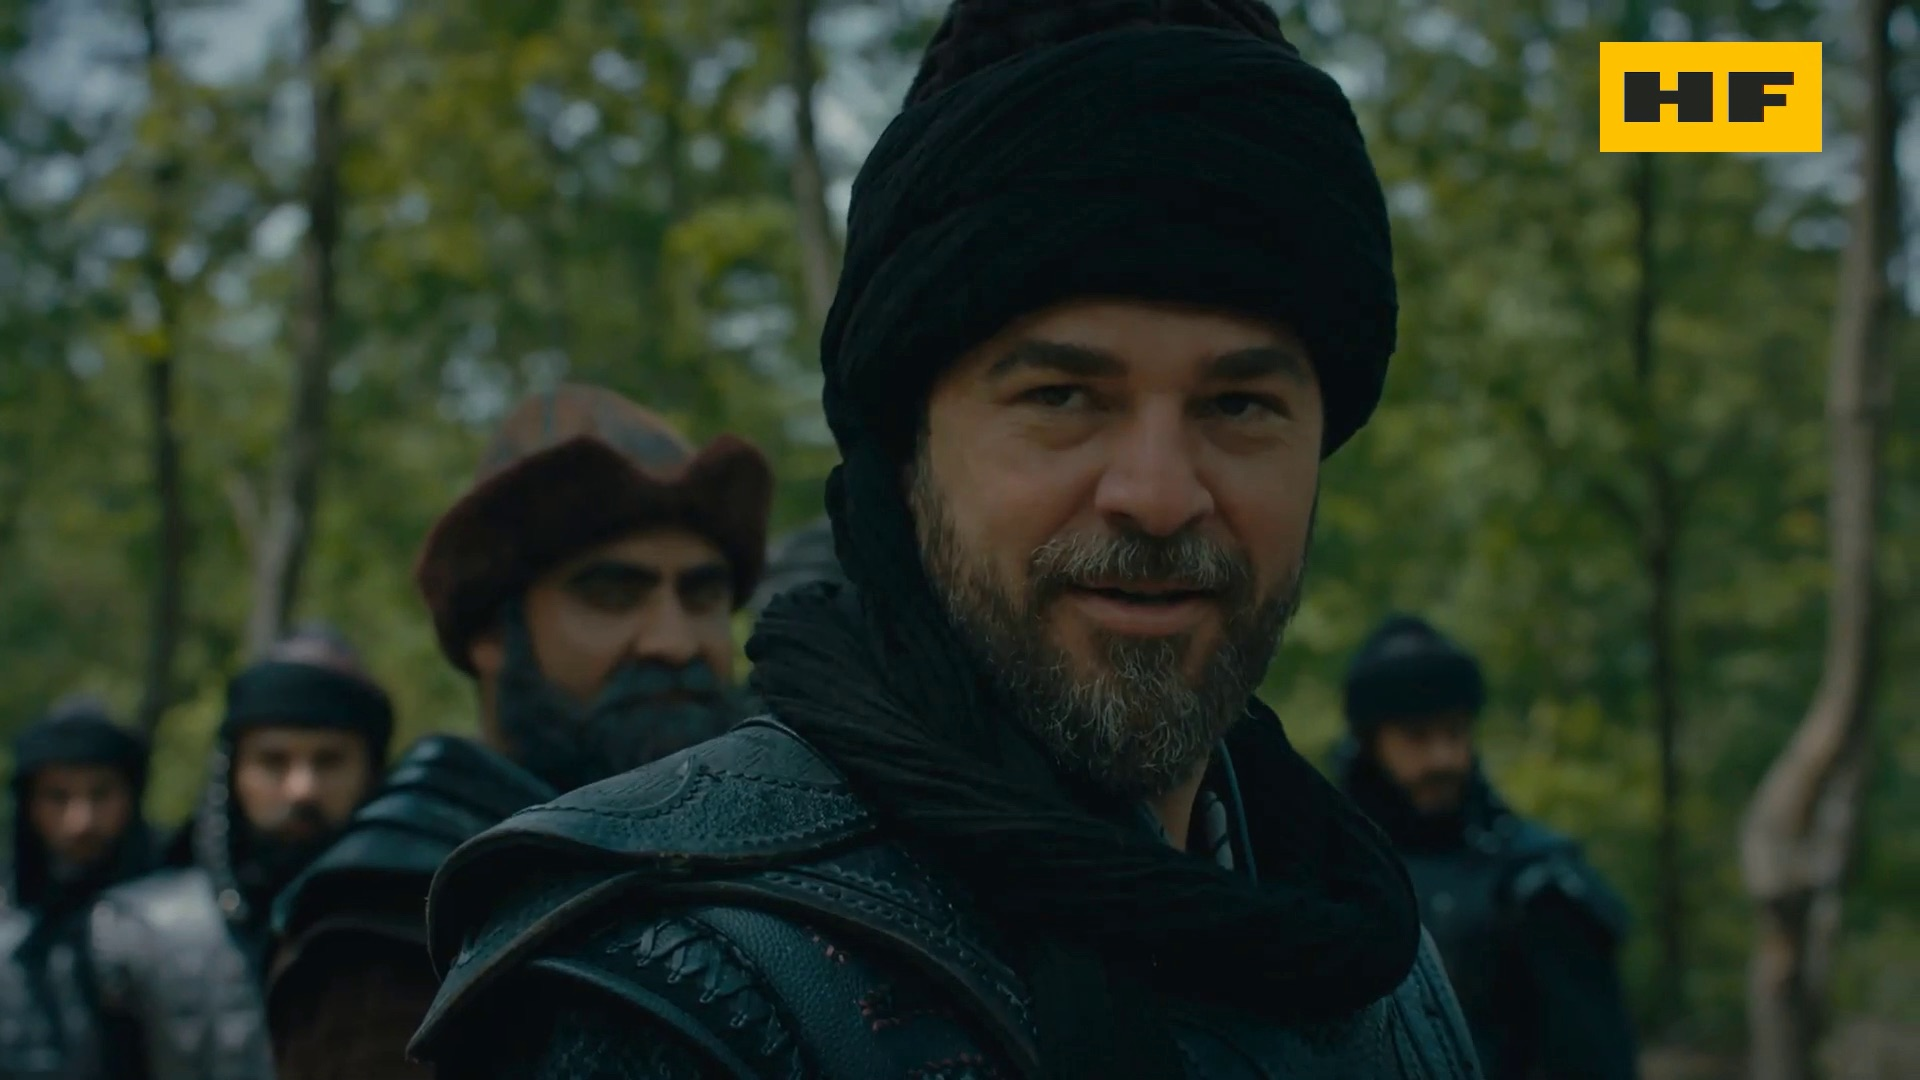 Release of Dirilis Ertugrul season 5 episode 29 Final